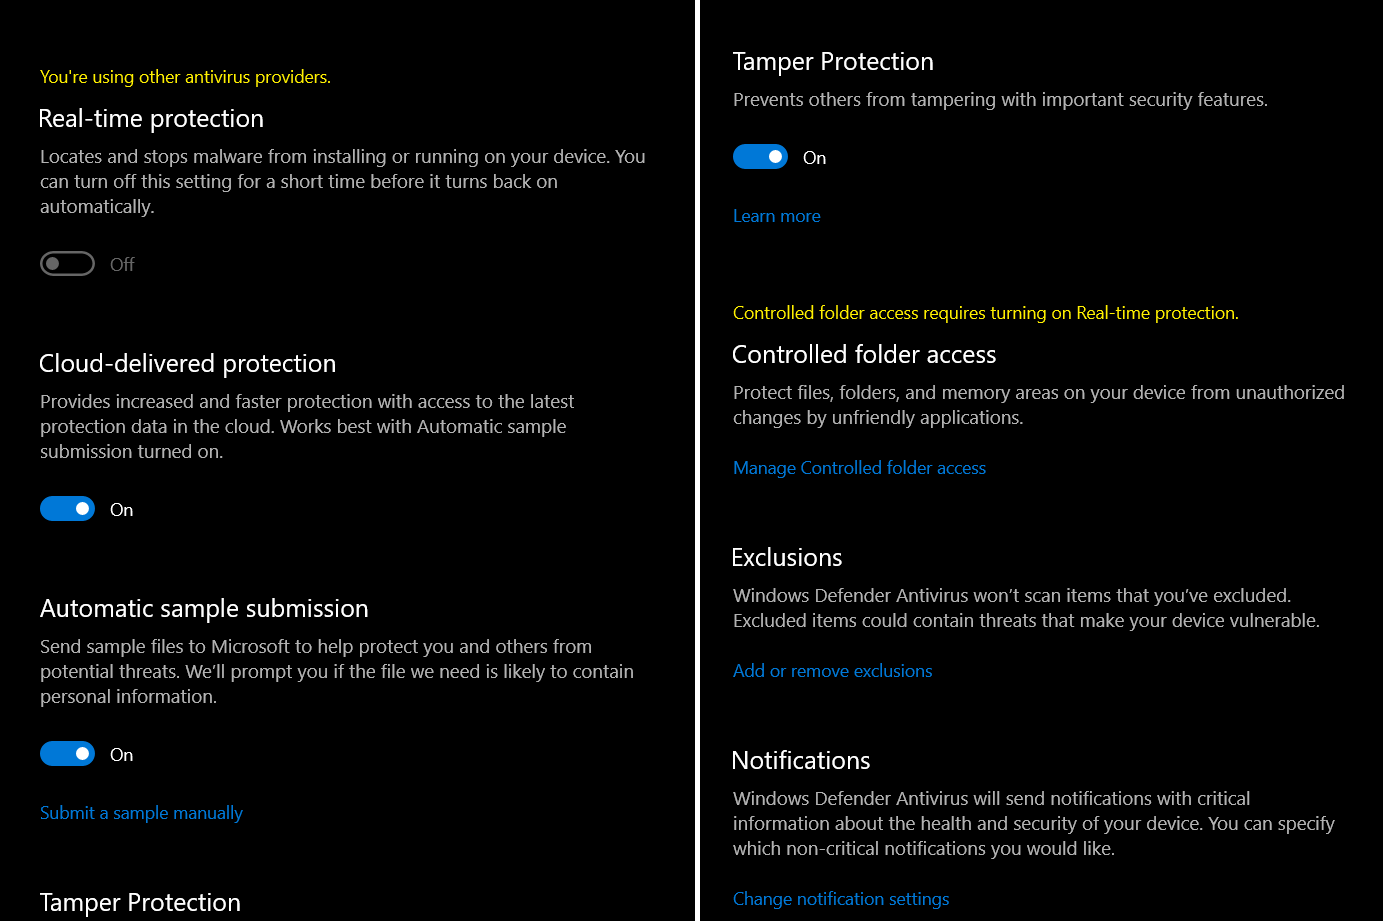 Windows 10 Security Center Issues with Other Providers and Itself. 5cd81981-4b8c-43d4-9f5e-d1849dd46c93?upload=true.png